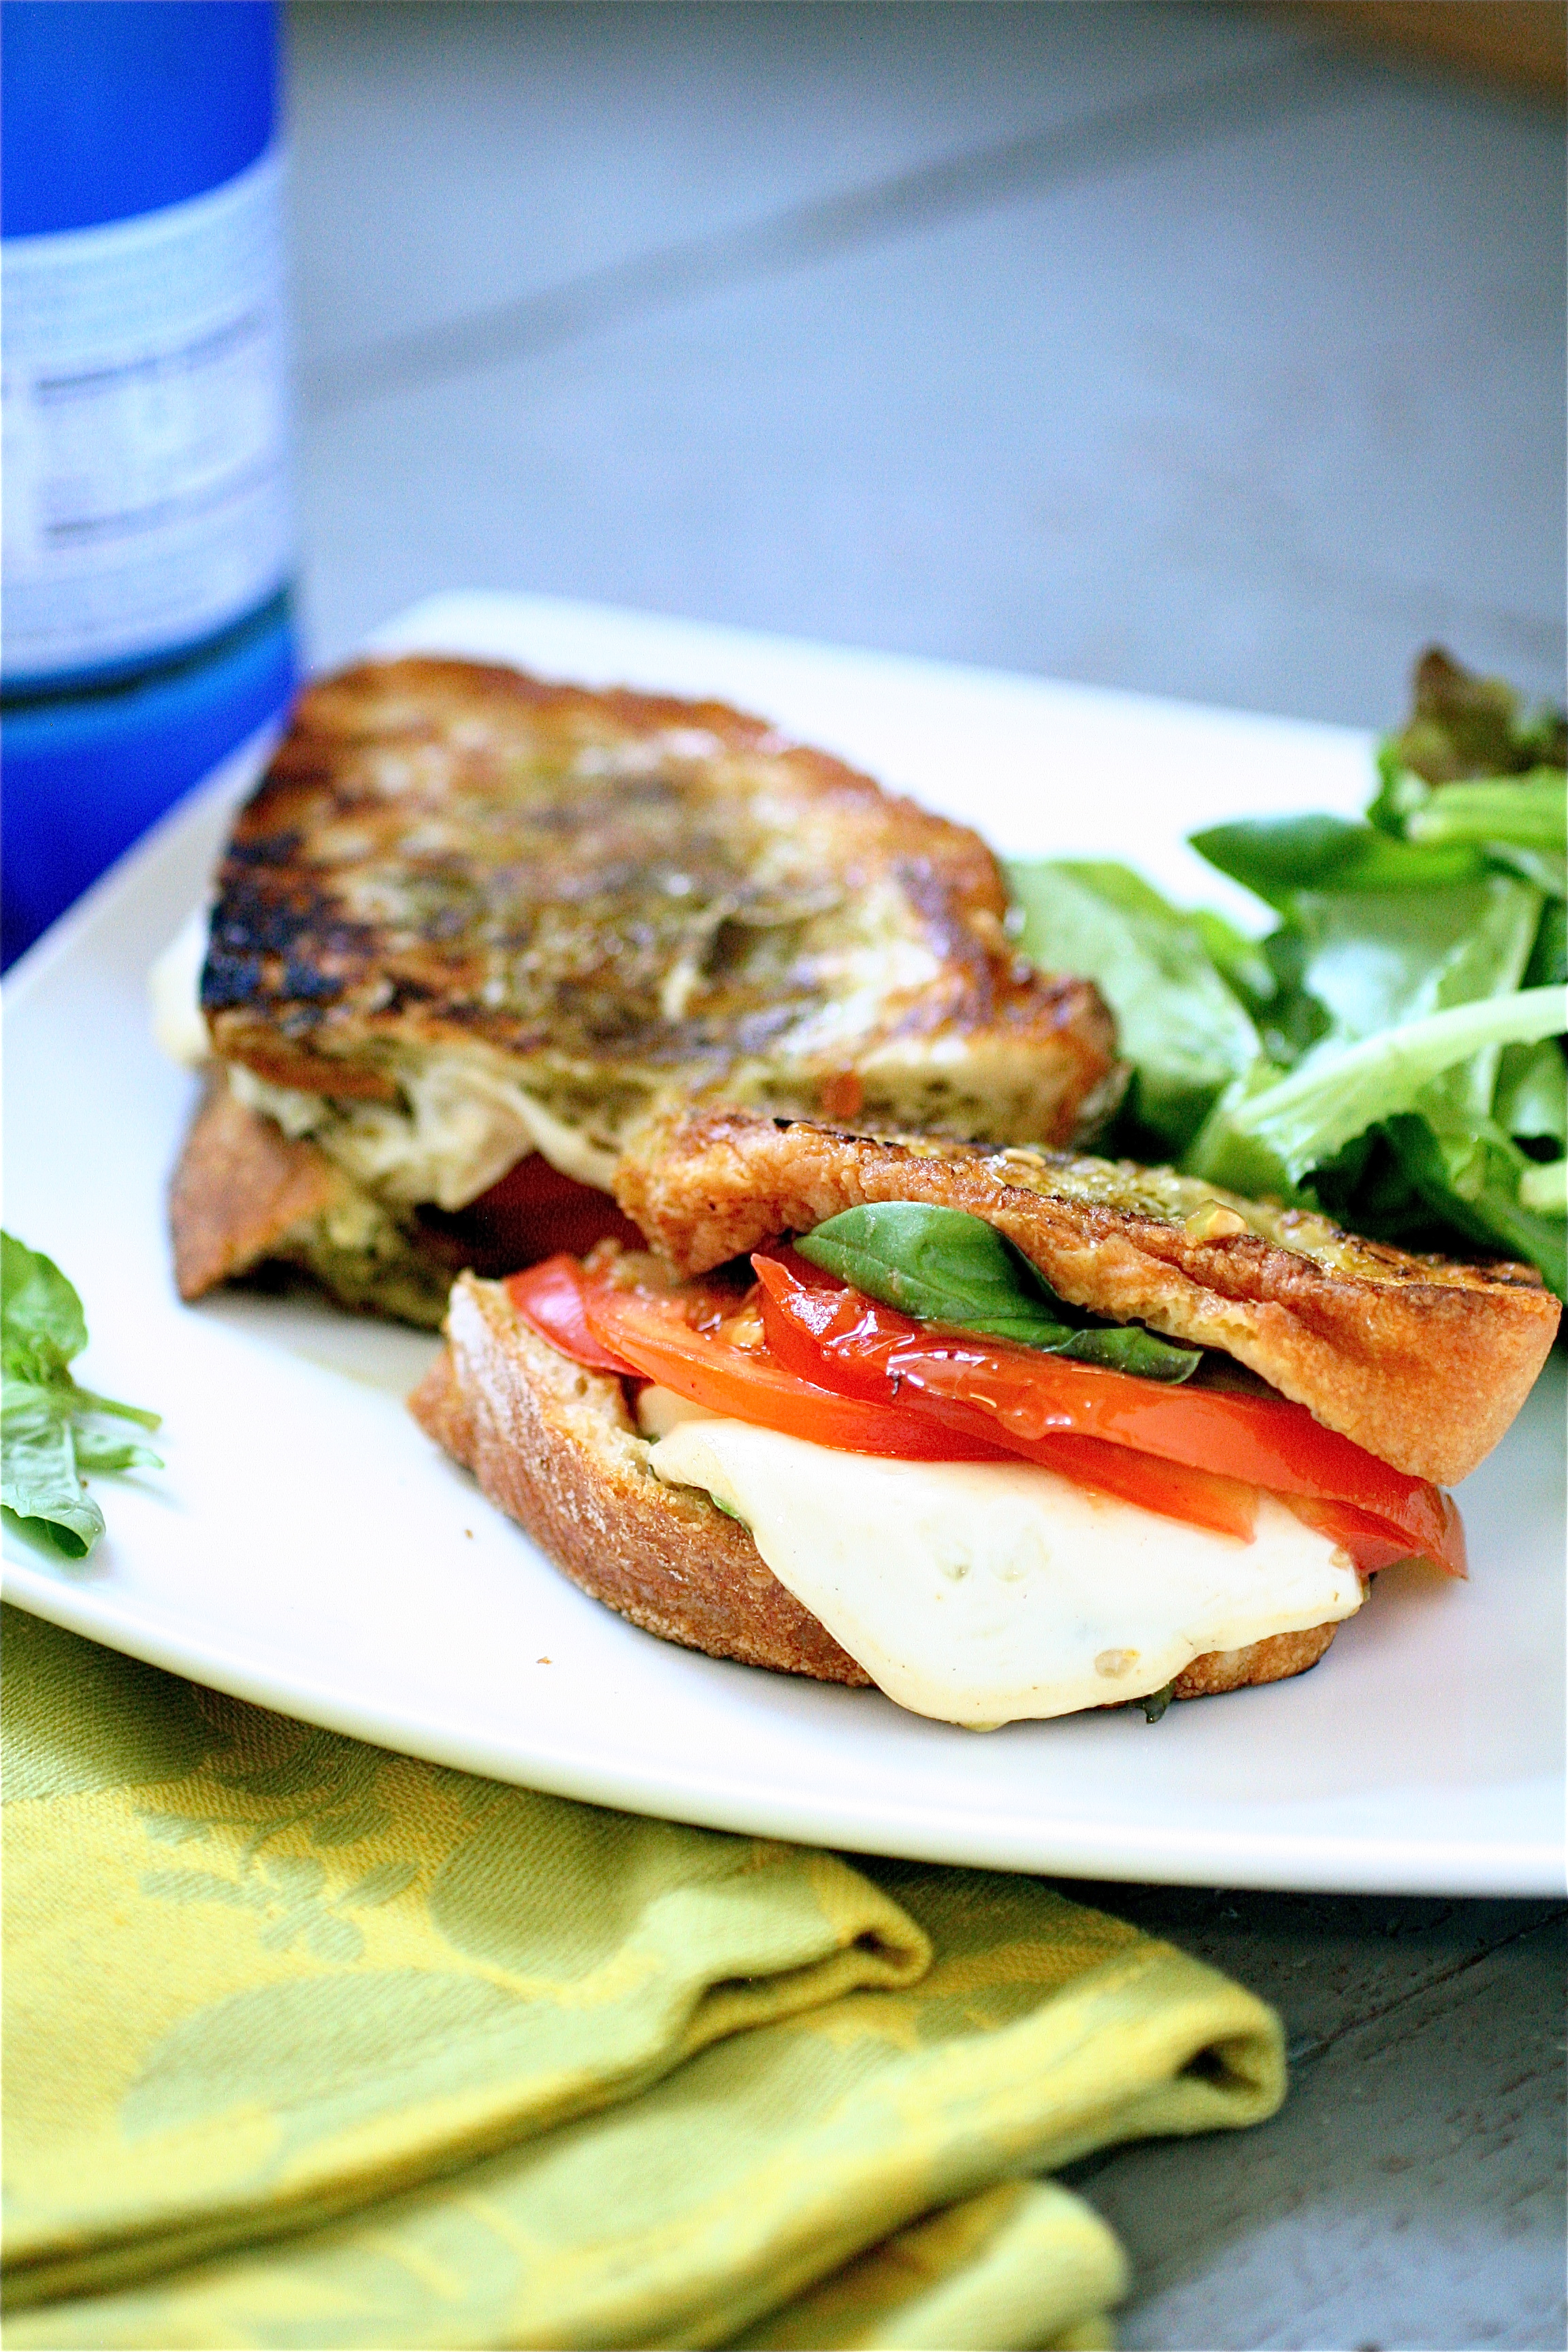 Grilled Smoked Mozzarella And Basil Pesto Sandwich | The Curvy Carrot